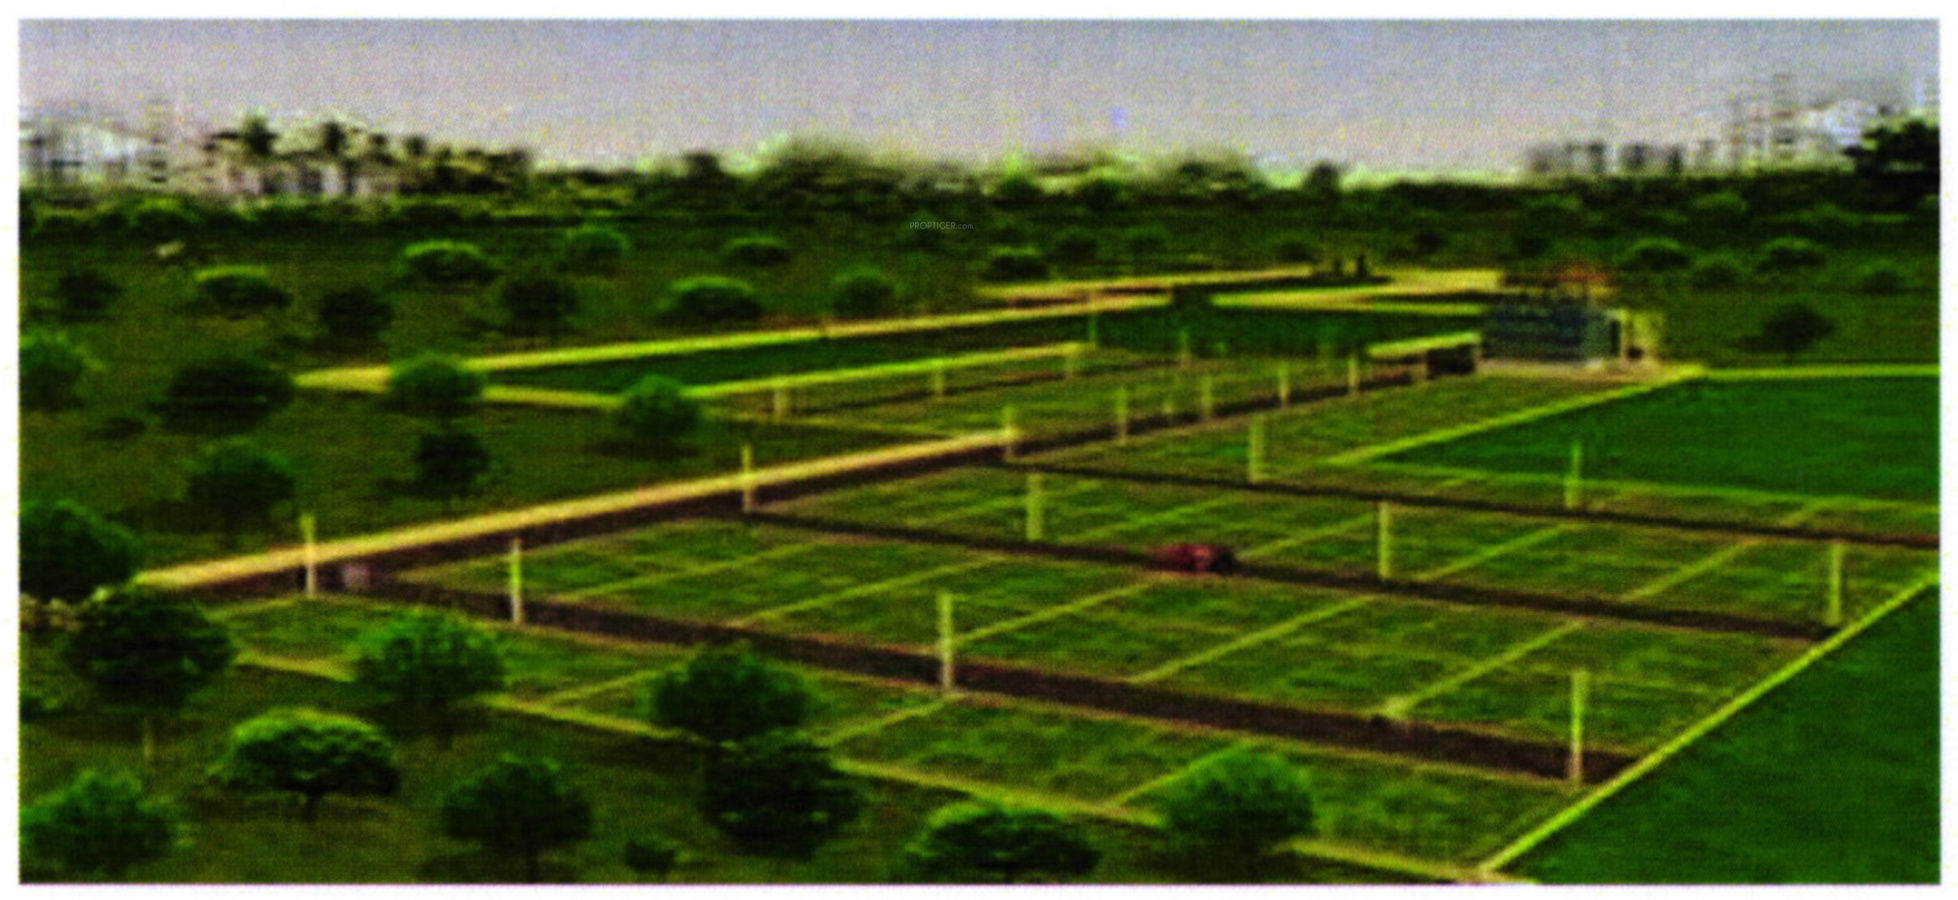 1158 sq ft Plot for Sale in Shubh Developers Pethapur Siddheshwari ...